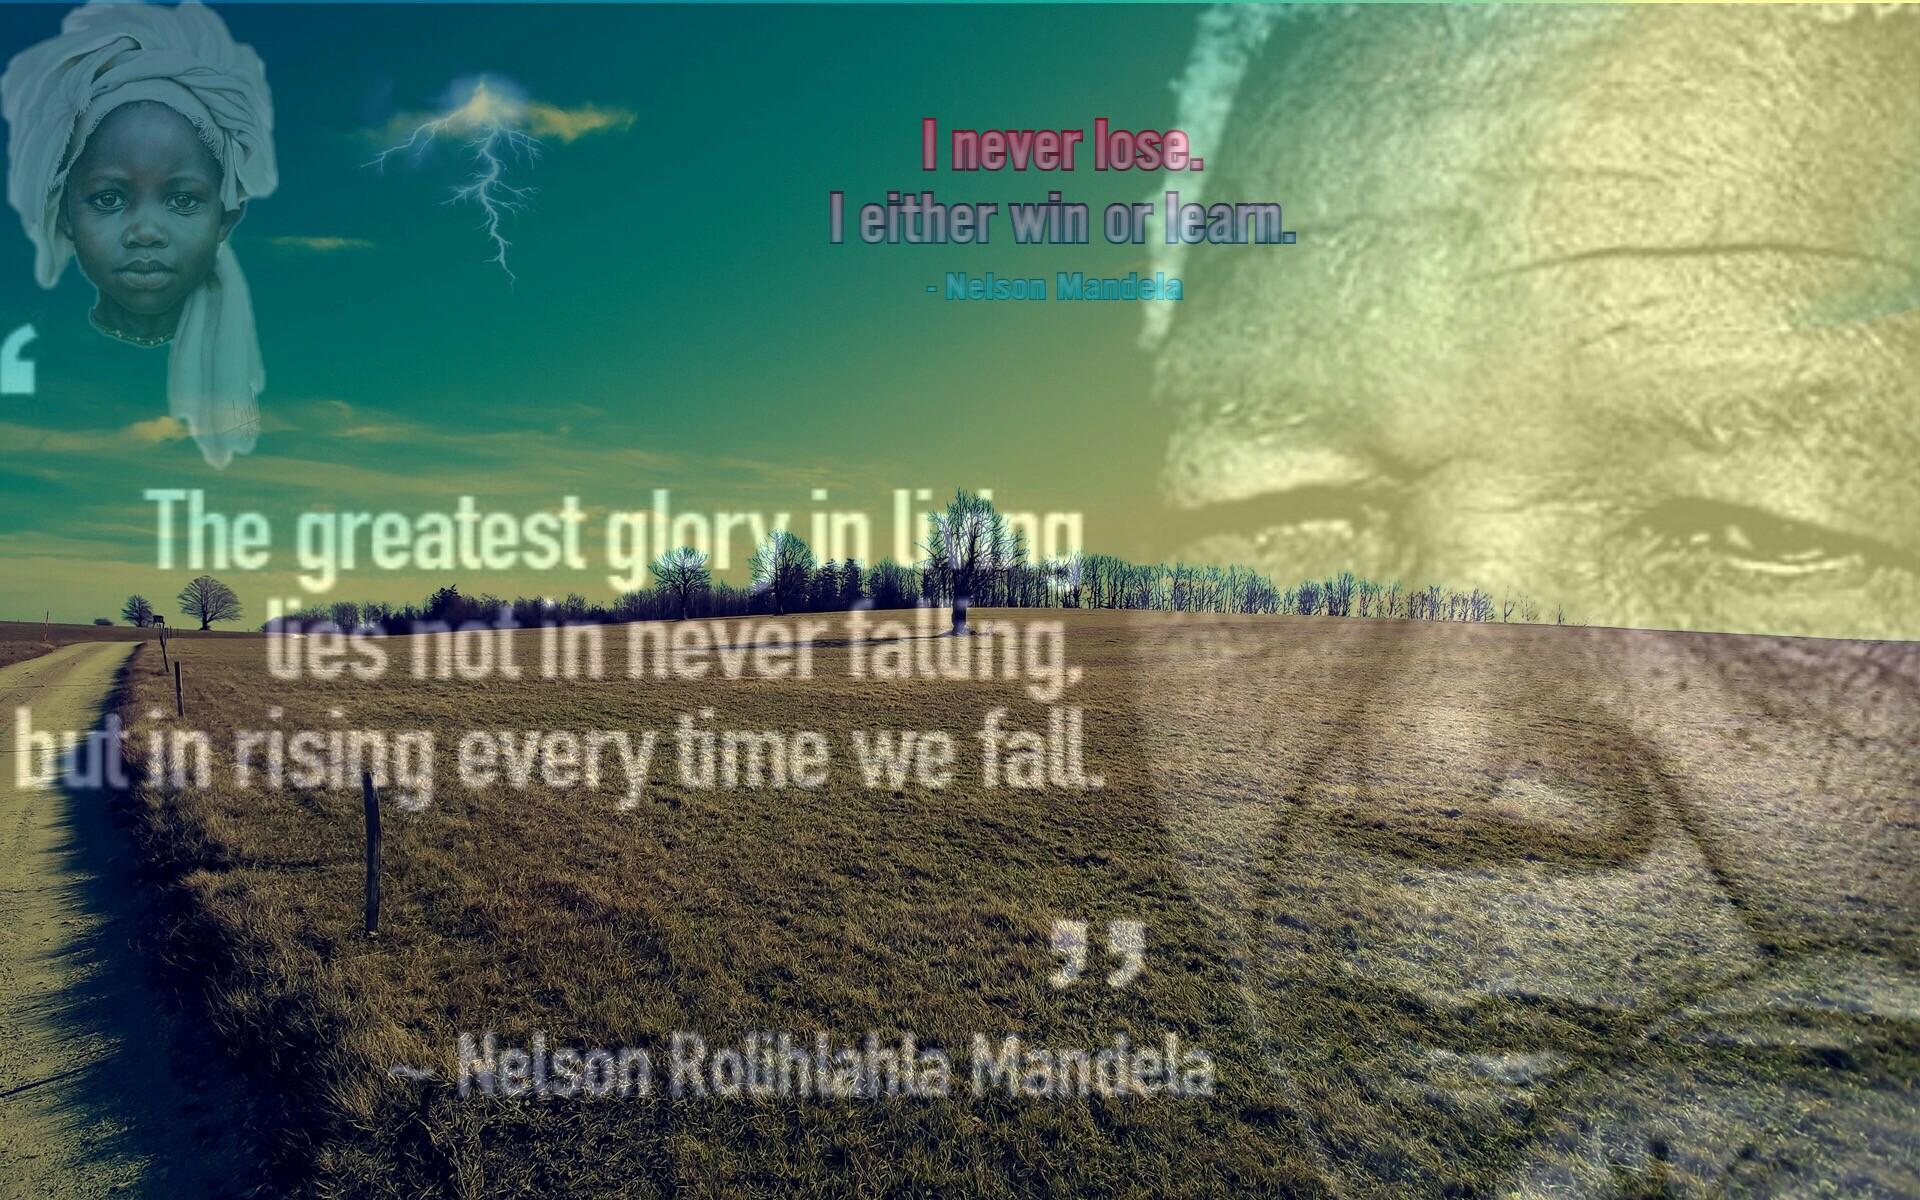 [Image] Learn from our mistakes, and never give up